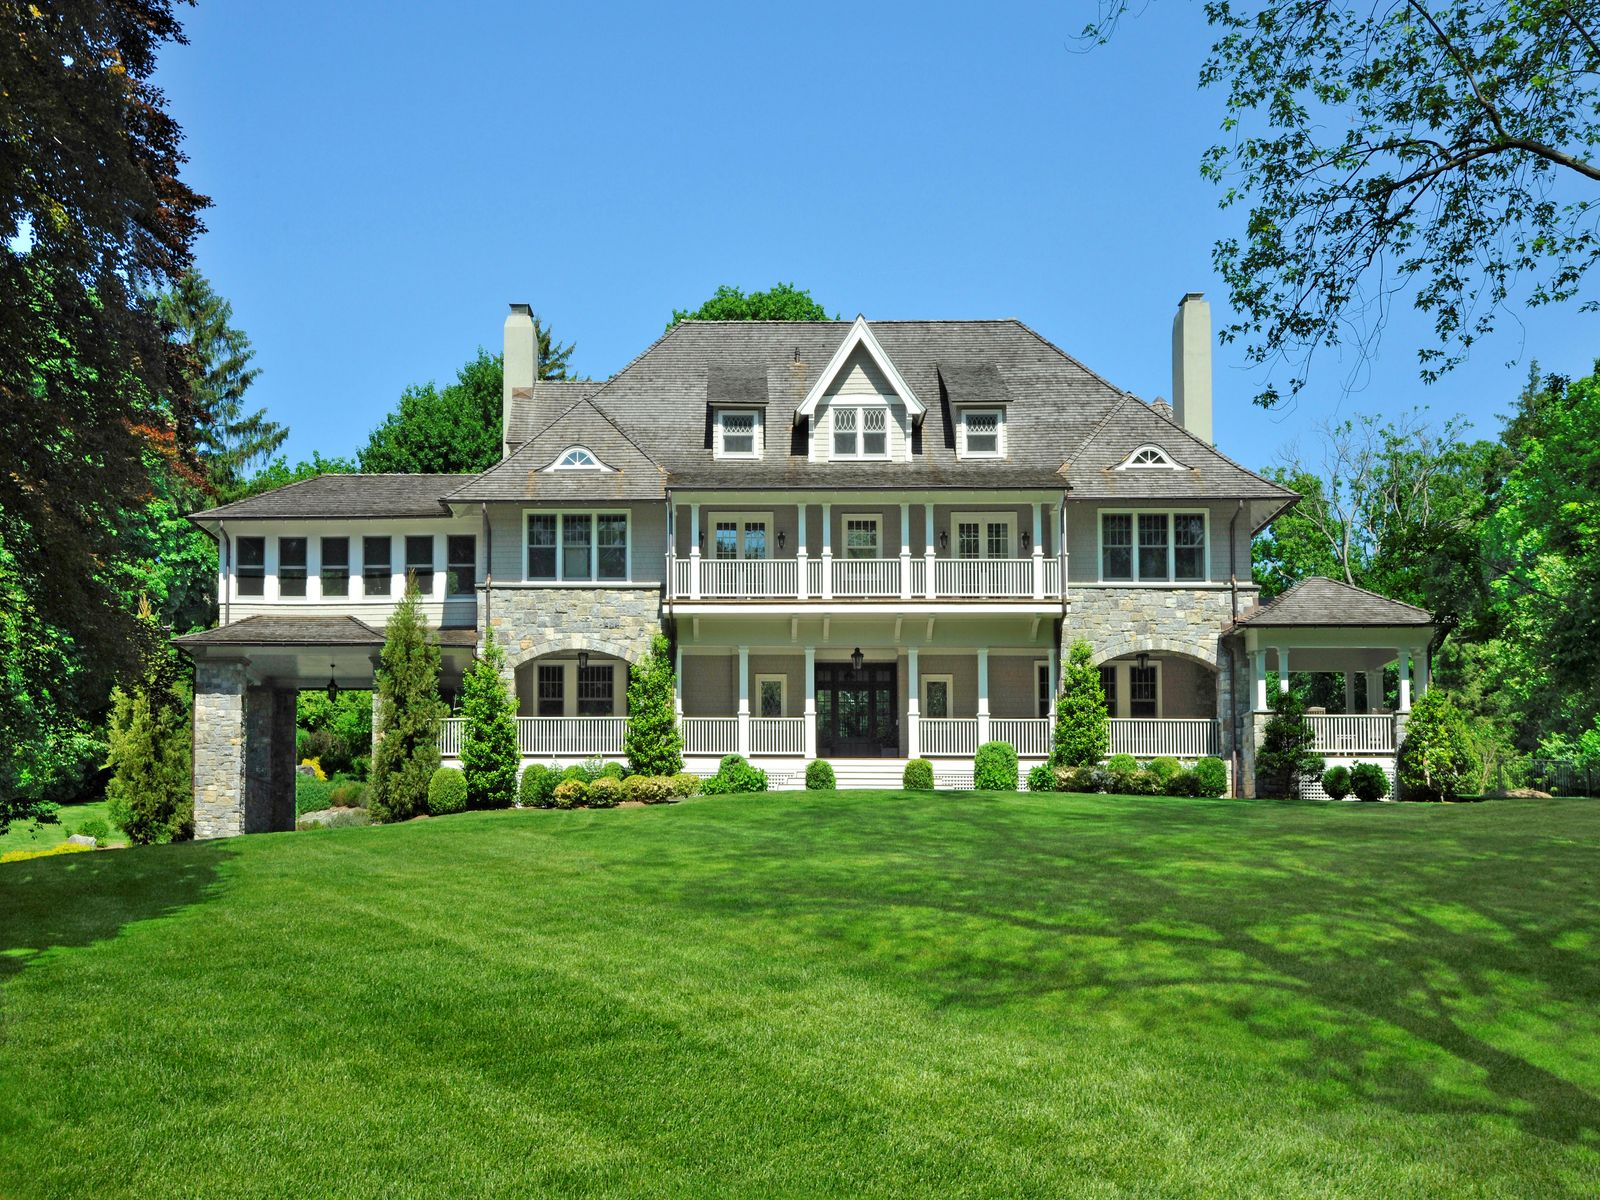 Enchanting estate on an in town lane greenwich ct single for Luxury homes for sale in greenwich ct